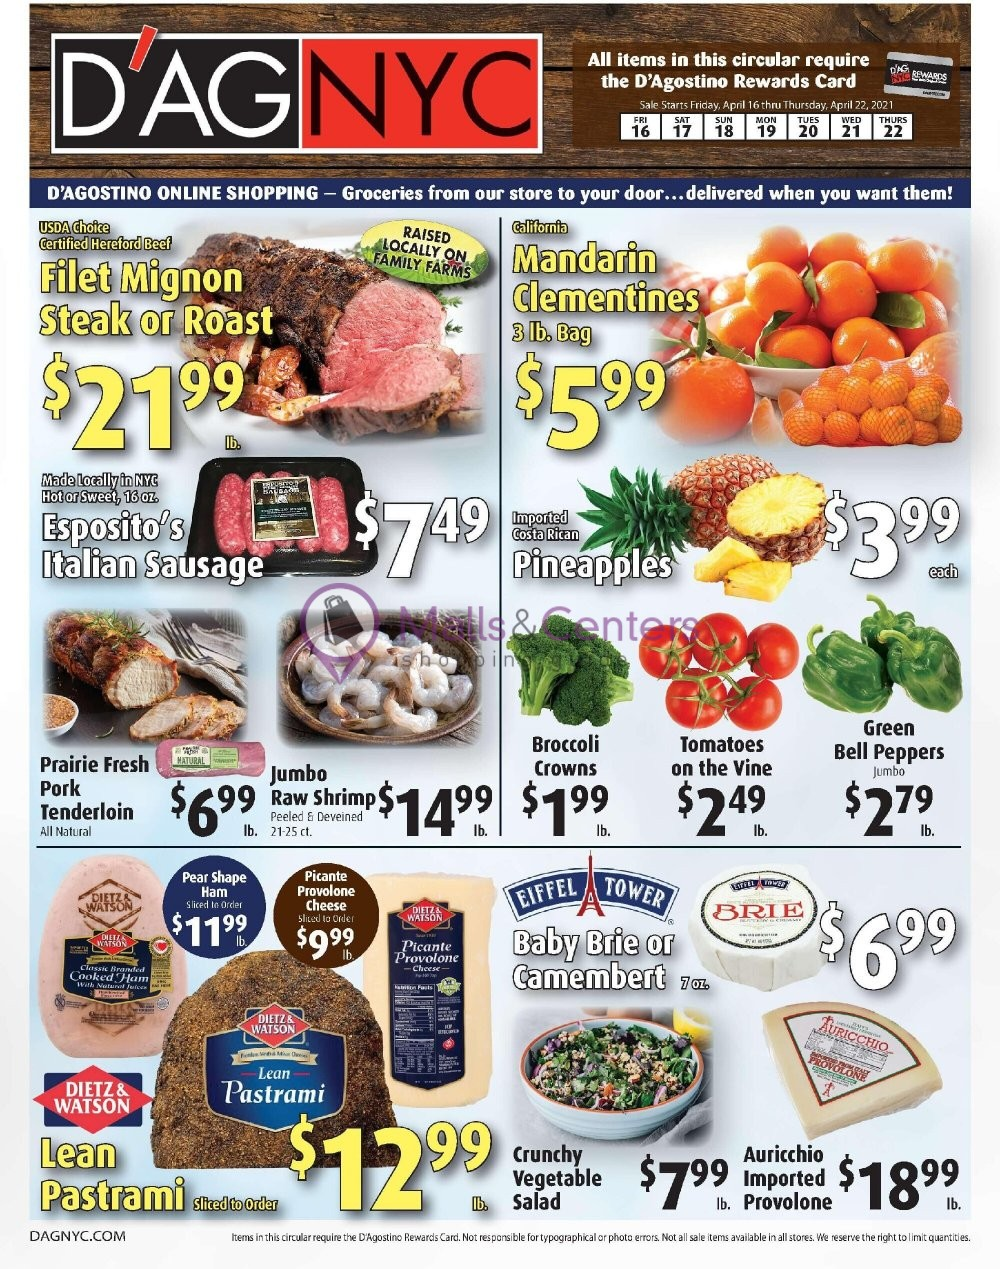 weekly ads D'Agostino - page 1 - mallscenters.com